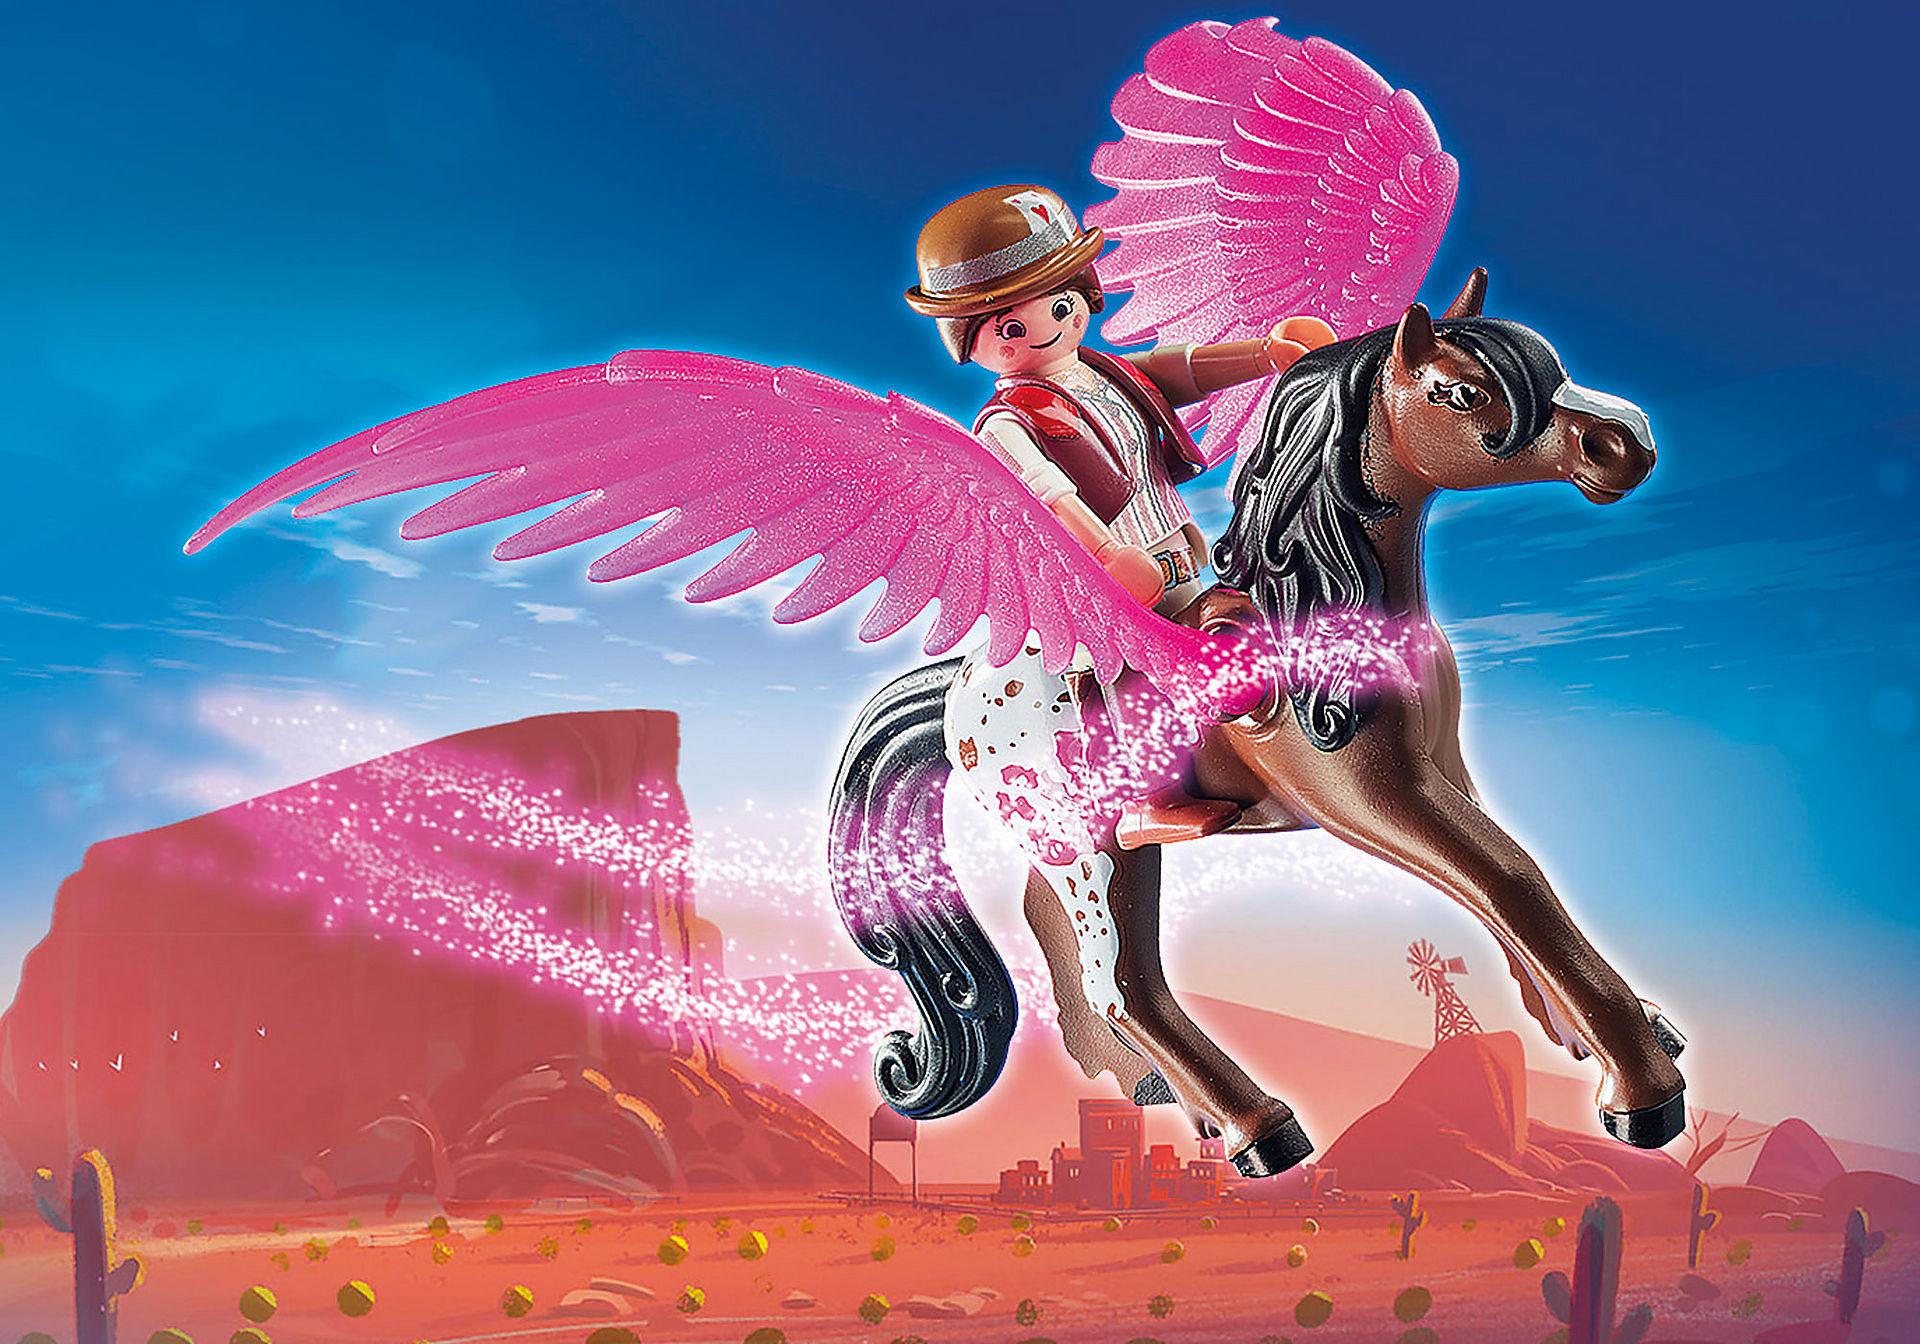 http://media.playmobil.com/i/playmobil/70074_product_extra1/PLAYMOBIL:THE MOVIE Marla and Del with Flying Horse